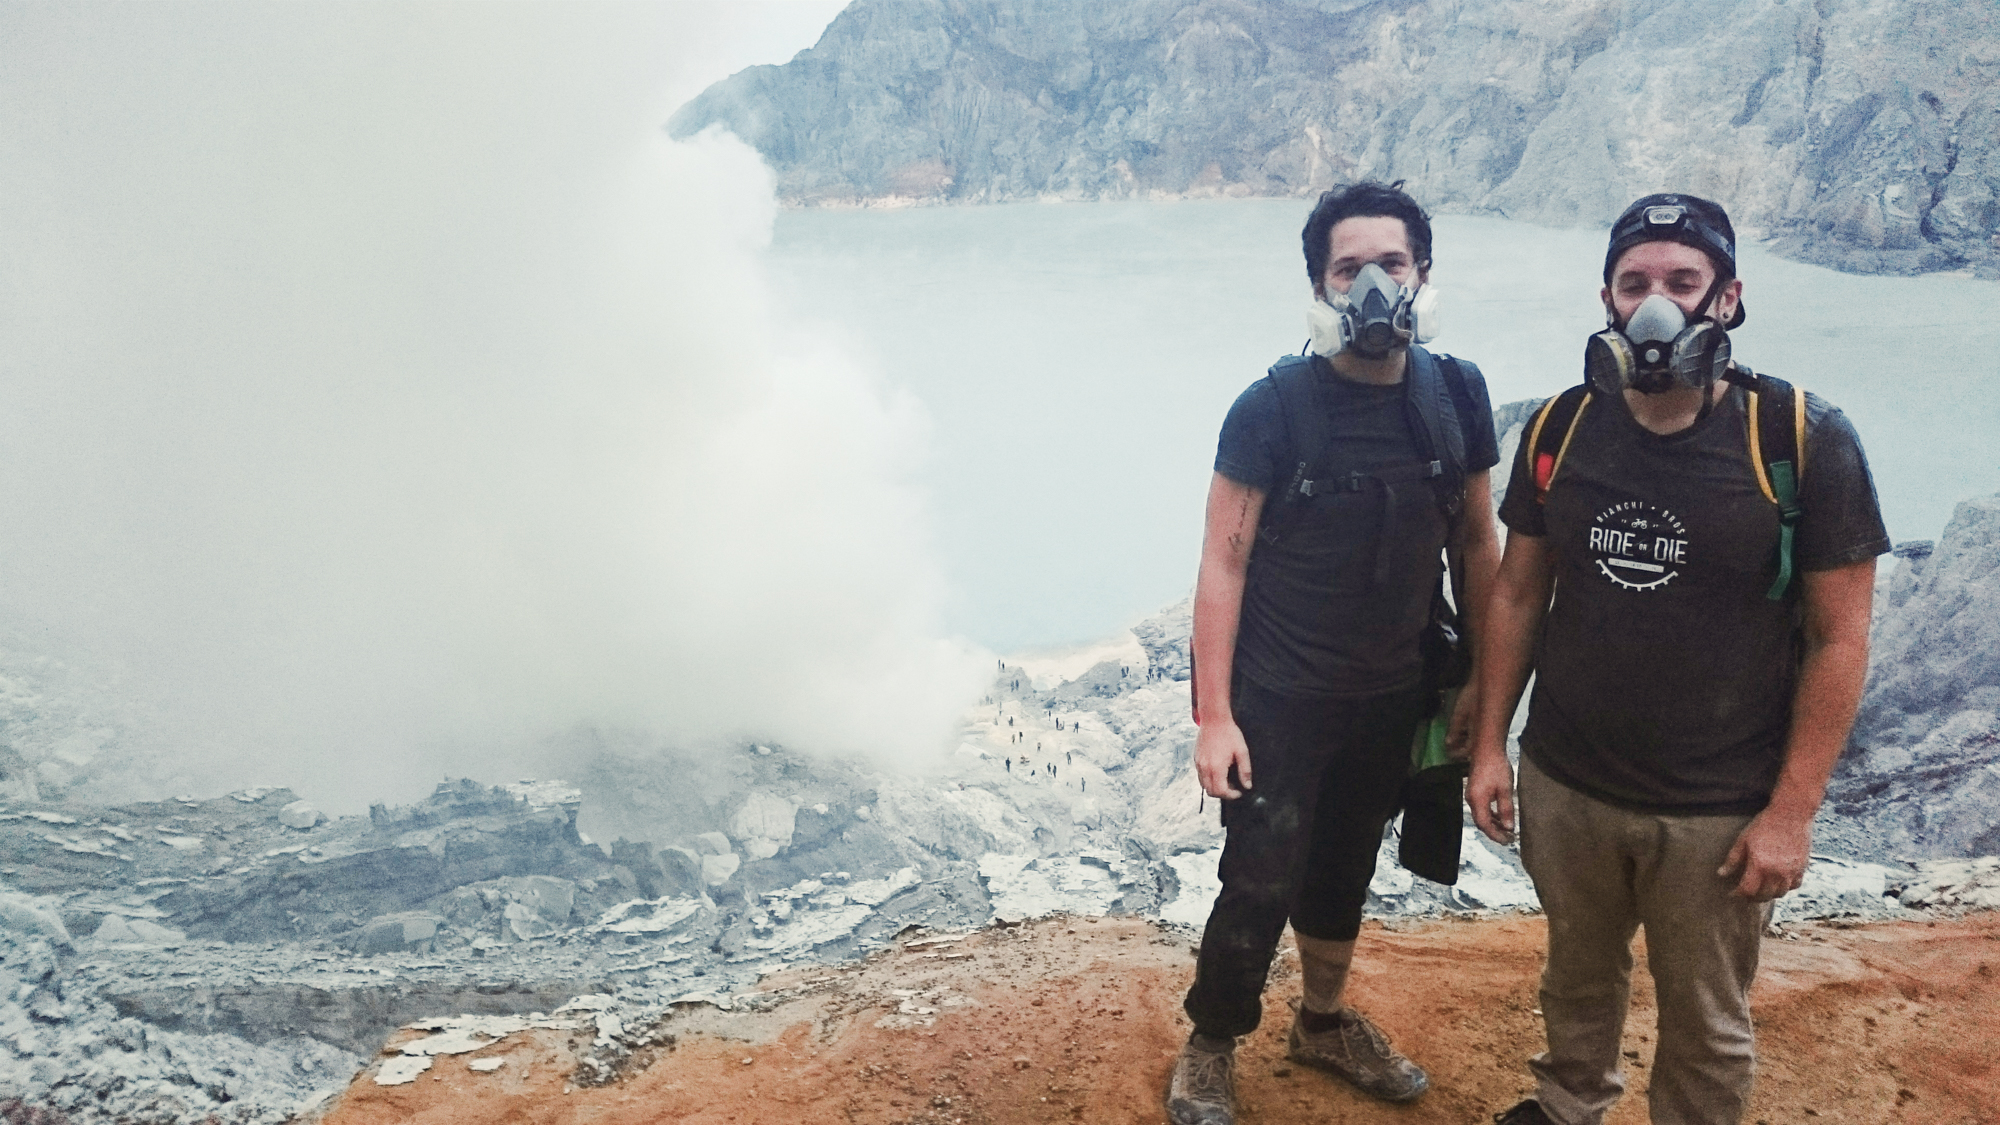 Mike & I inside a volcano's sulfer mine, in Indonesia on Christmas morning.